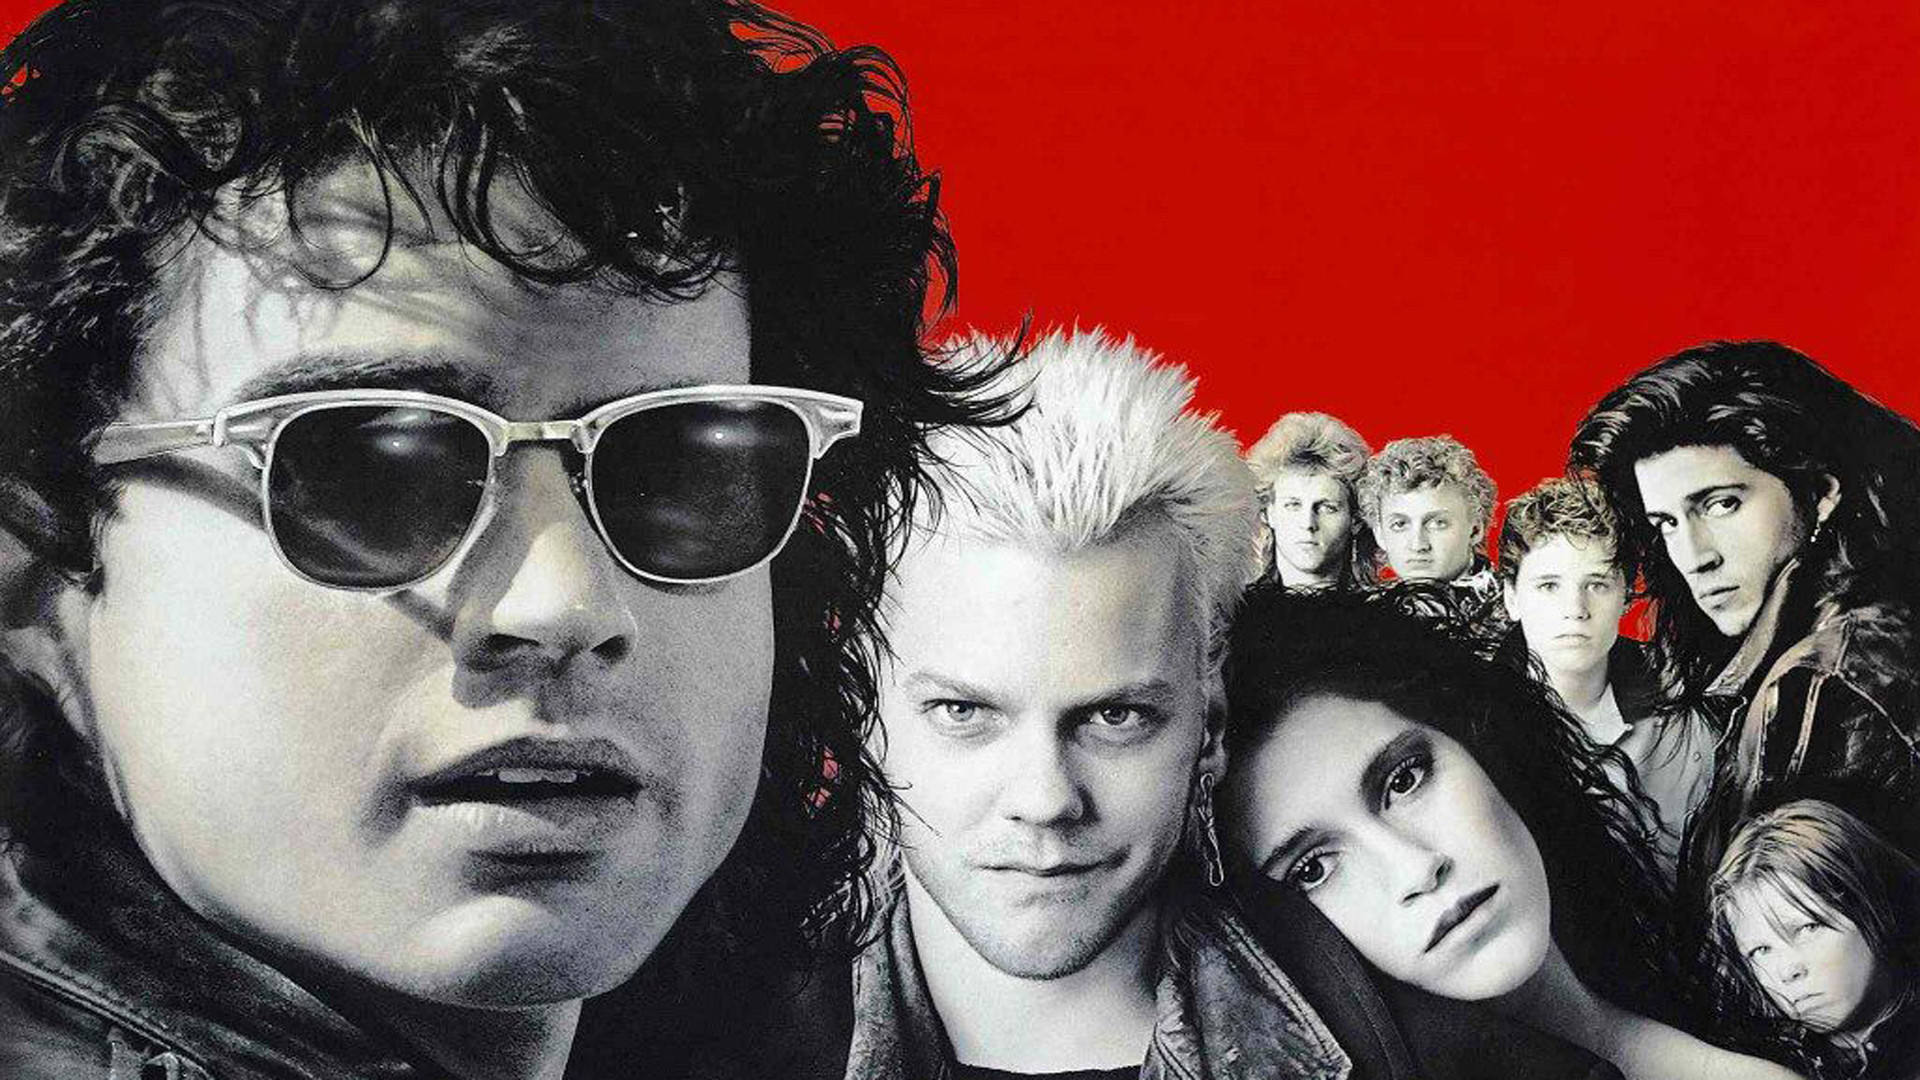 lost boys of